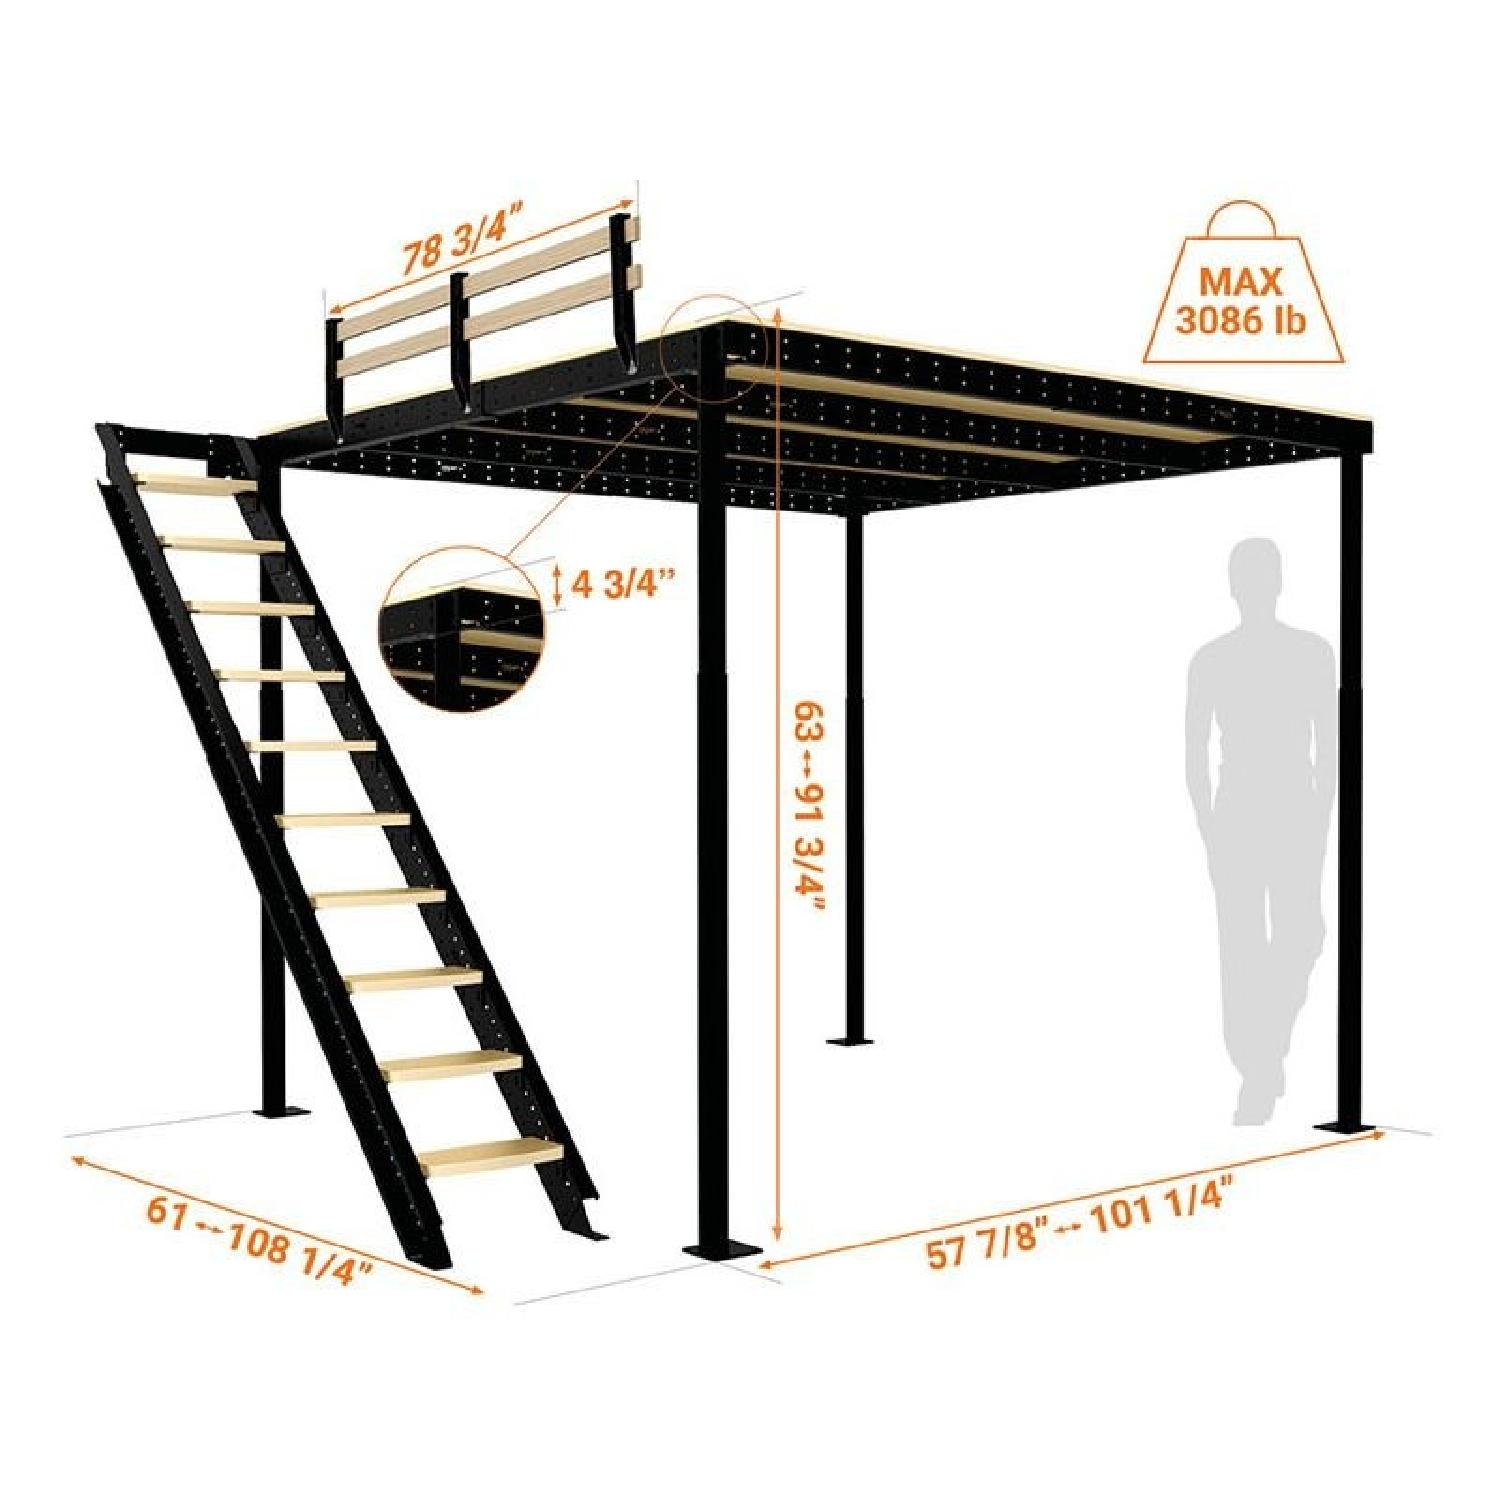 Loft Bed TS 8 w/ Lateral Stairs - image-0